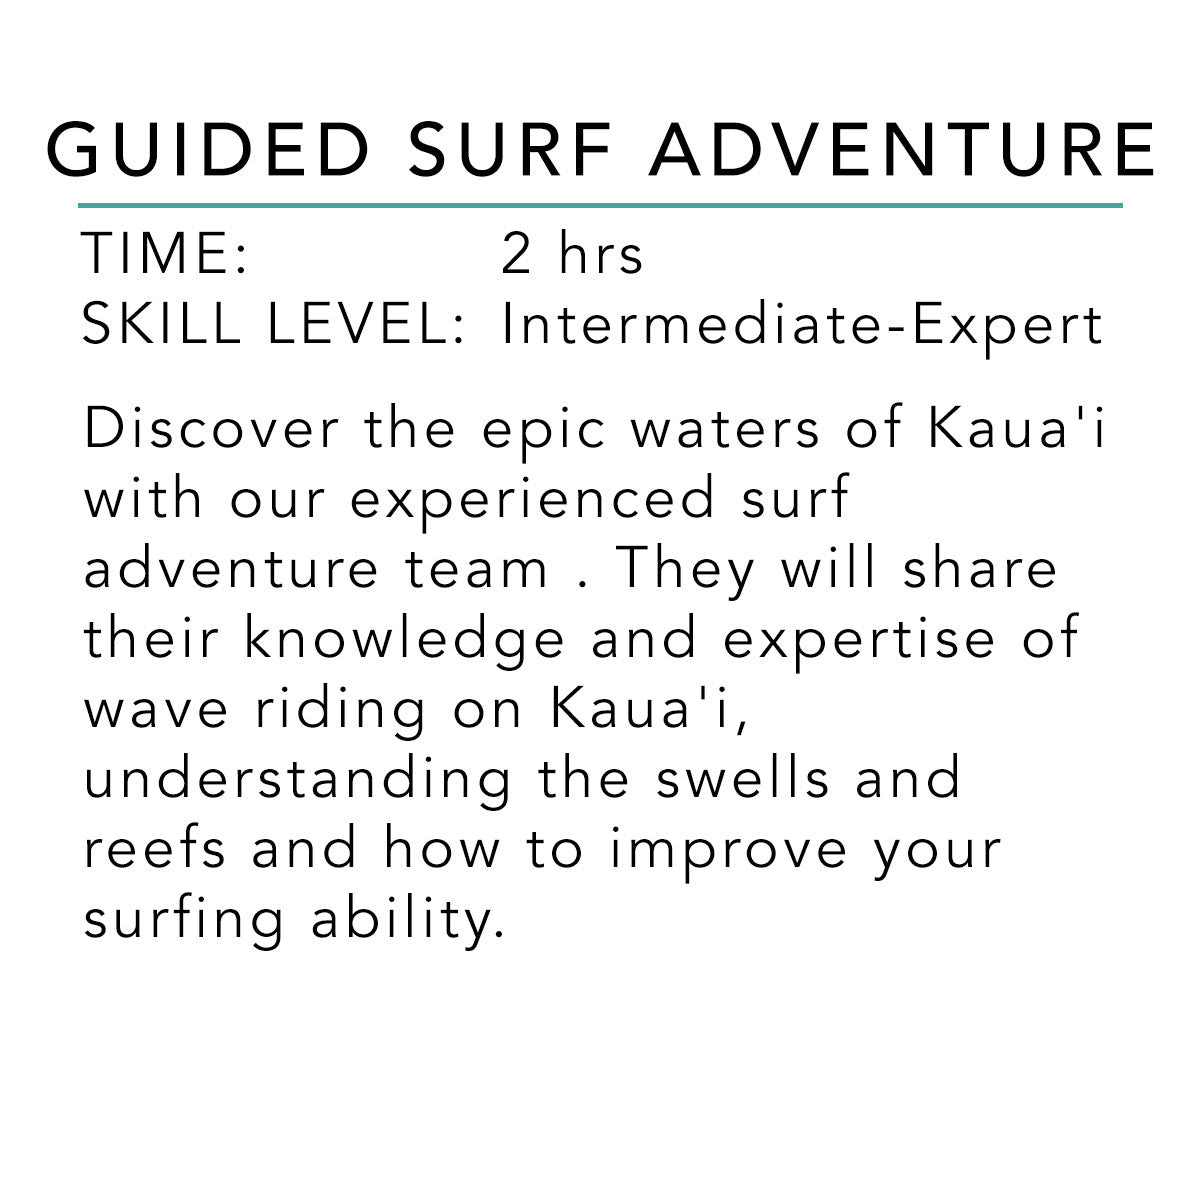 Guided Surf Adventure